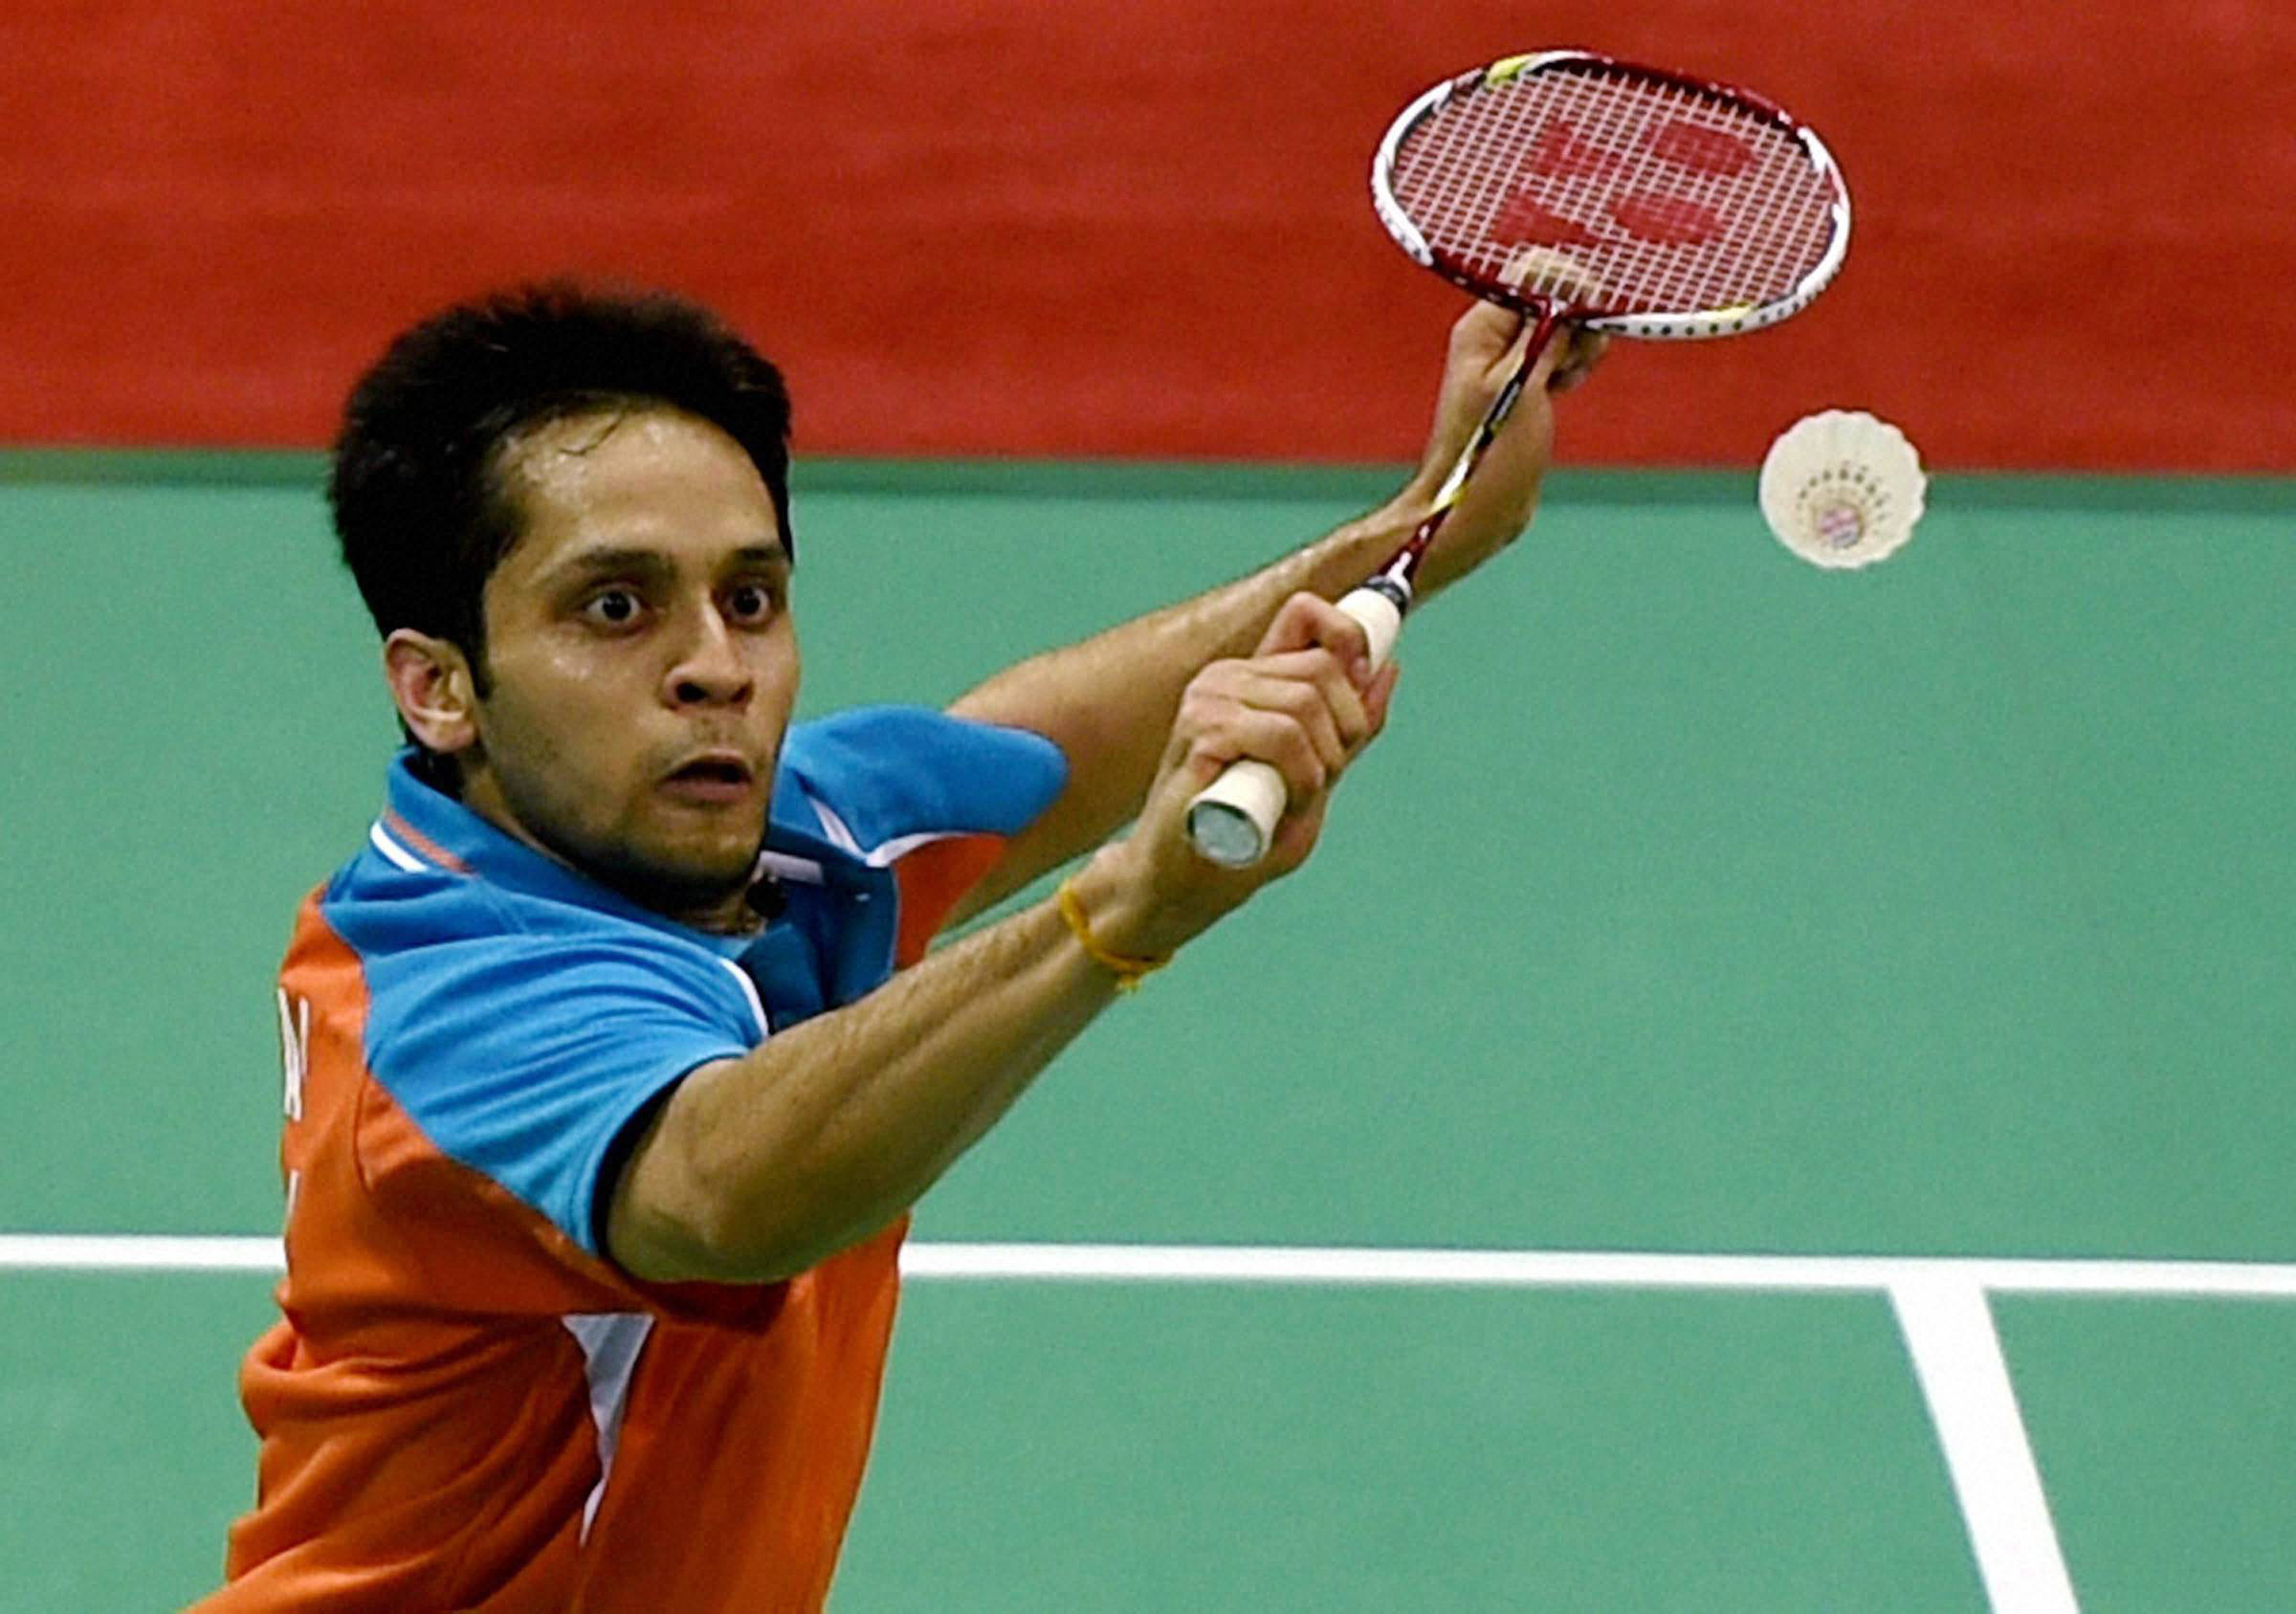 Saina Nehwal and Parupalli Kashyap reach China Open quarters